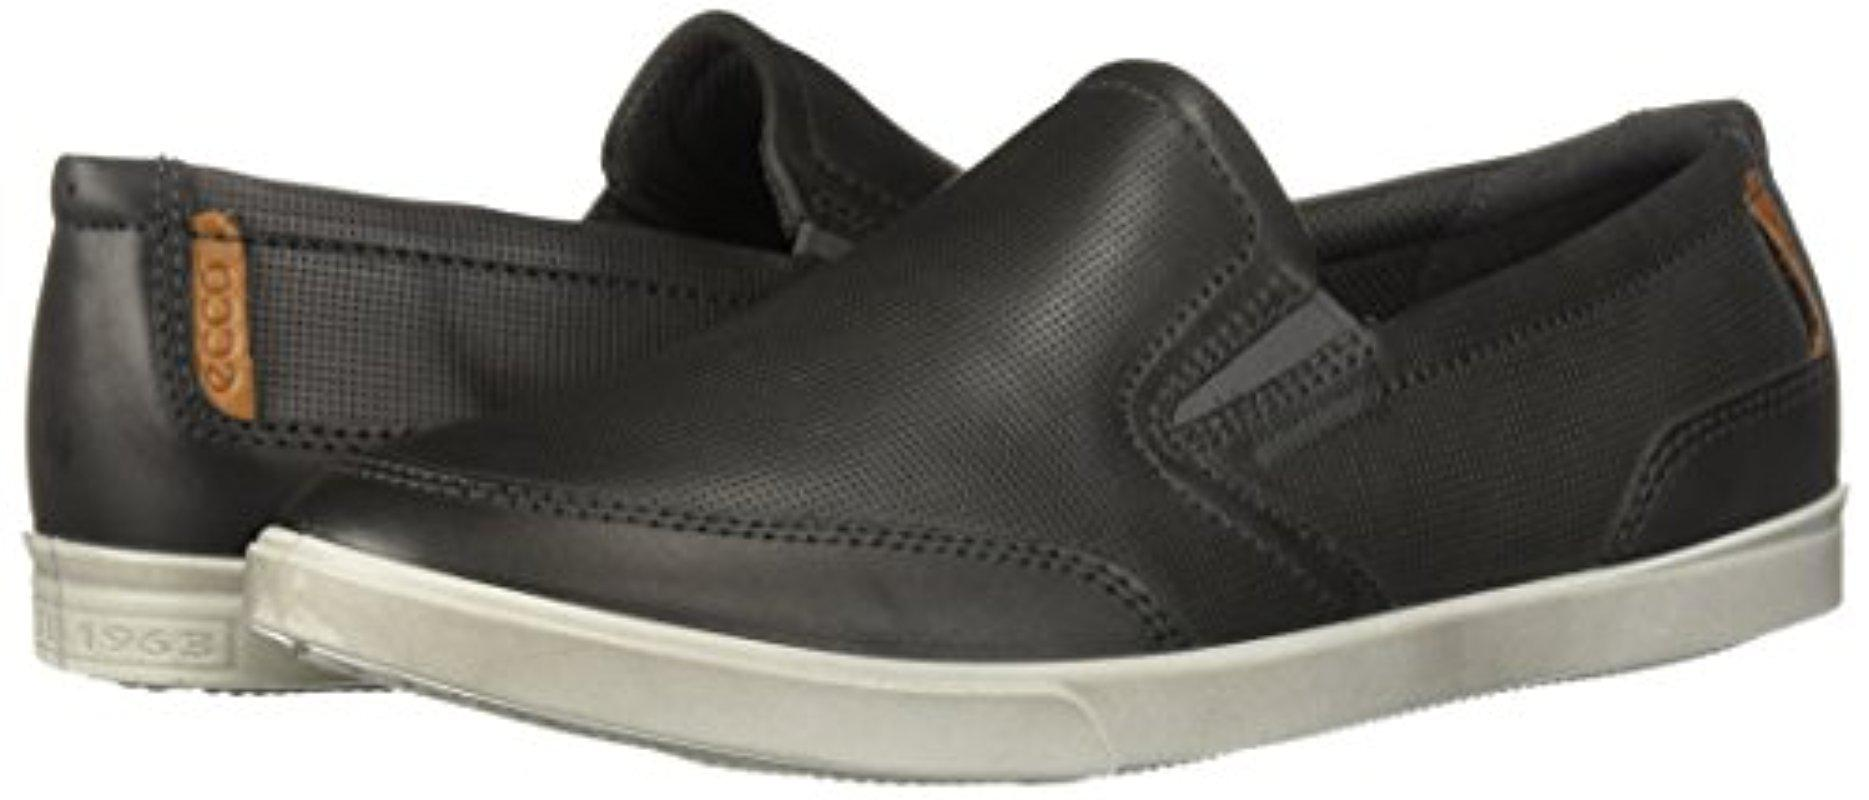 Ecco Collin Casual Slip On in Titanium